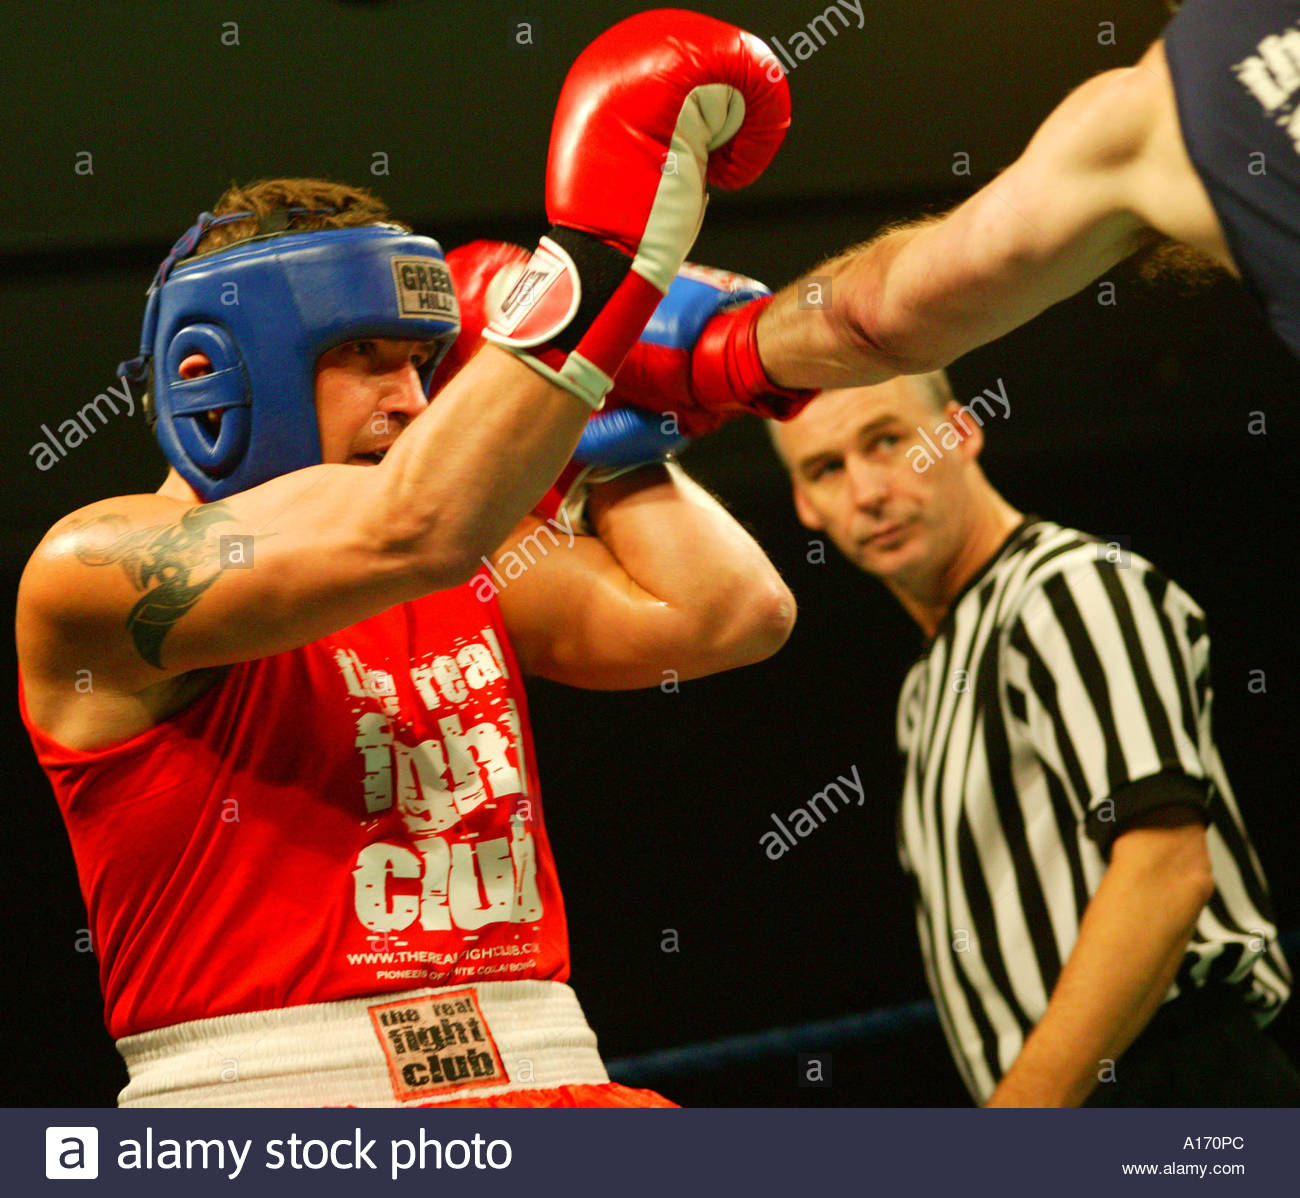 Schiedsrichter beobachten Boxer in The Real Fight Club, White Collar Boxing, Grosvernor Square, London, England. Stockbild